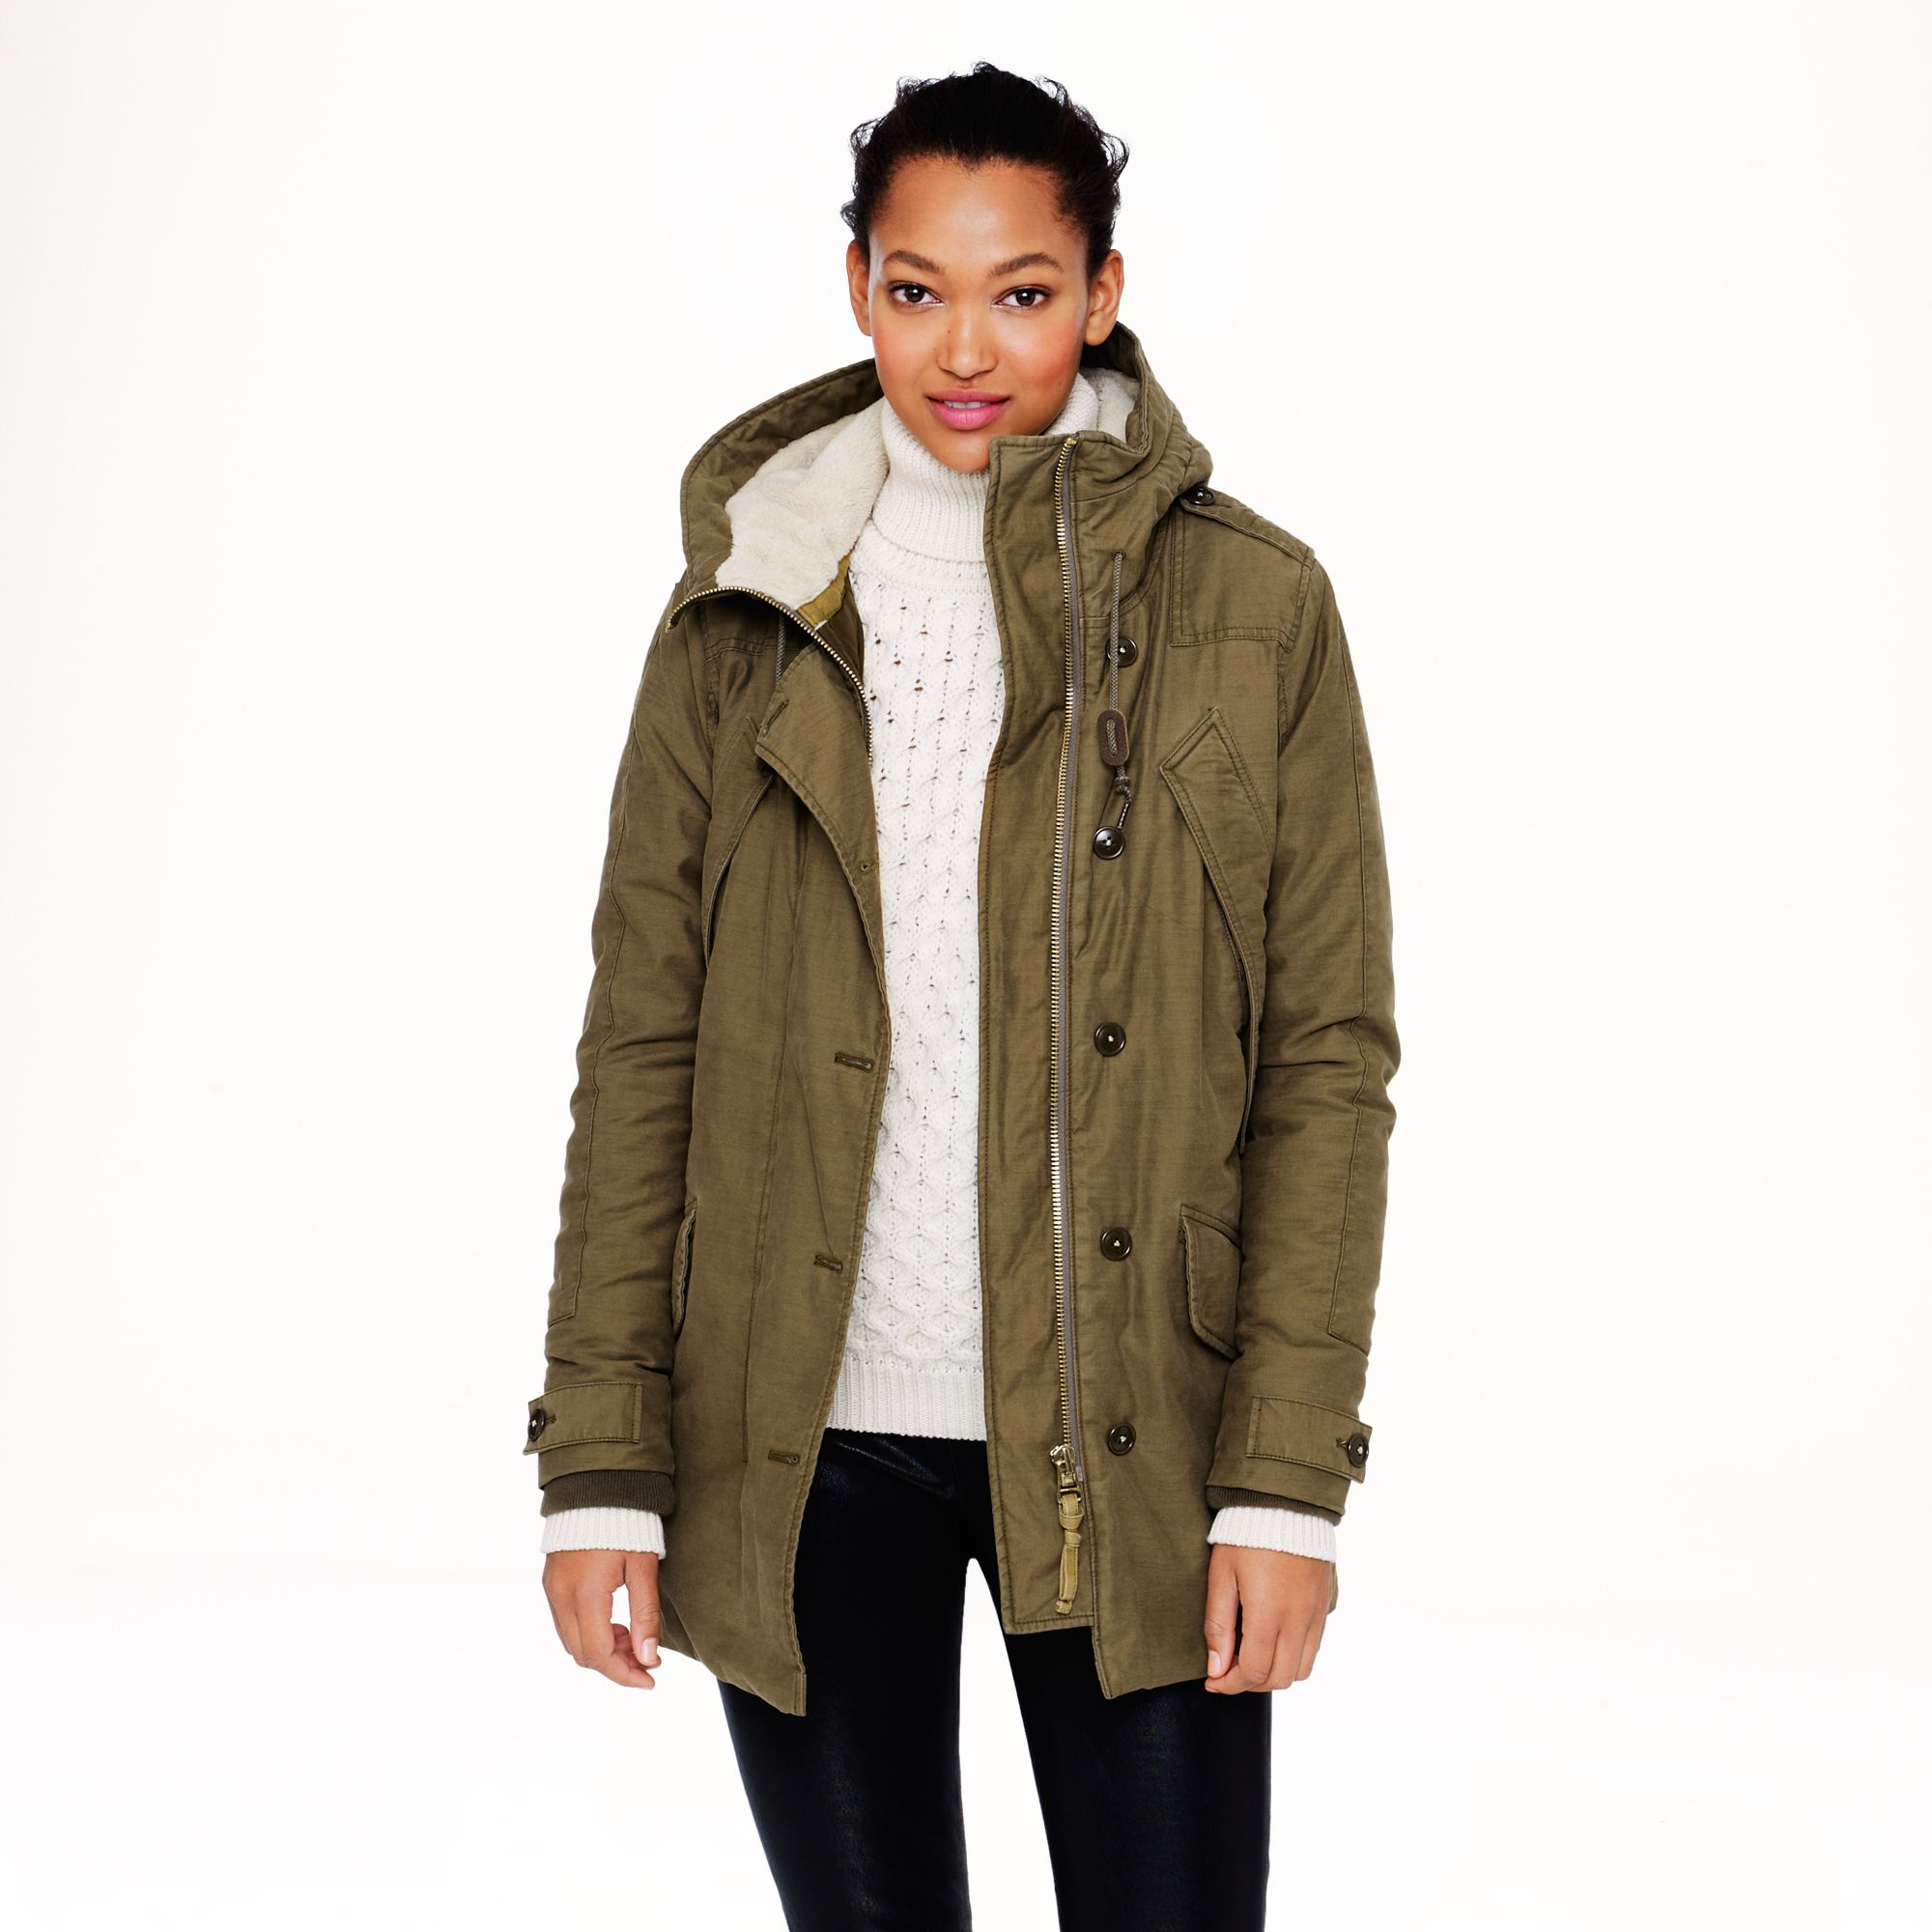 J.crew Sherpa Lined Parka Jacket in Natural